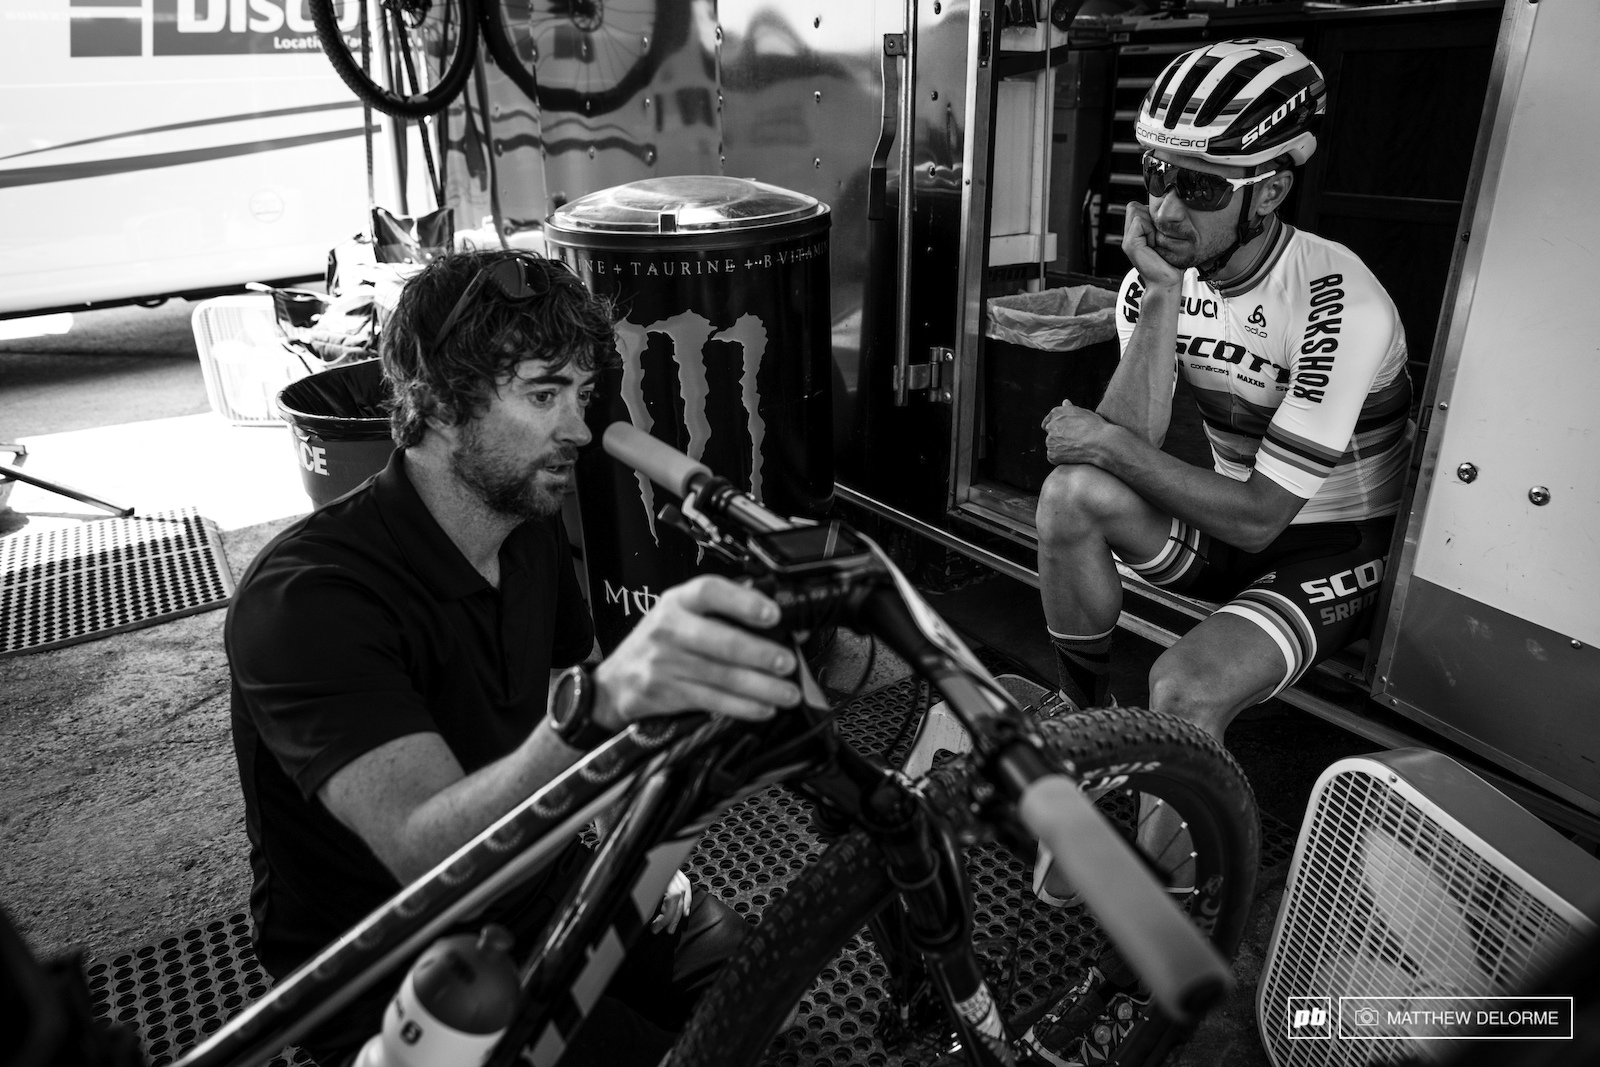 Nino talks suspension settings for the weekend with the SRAM engineers.